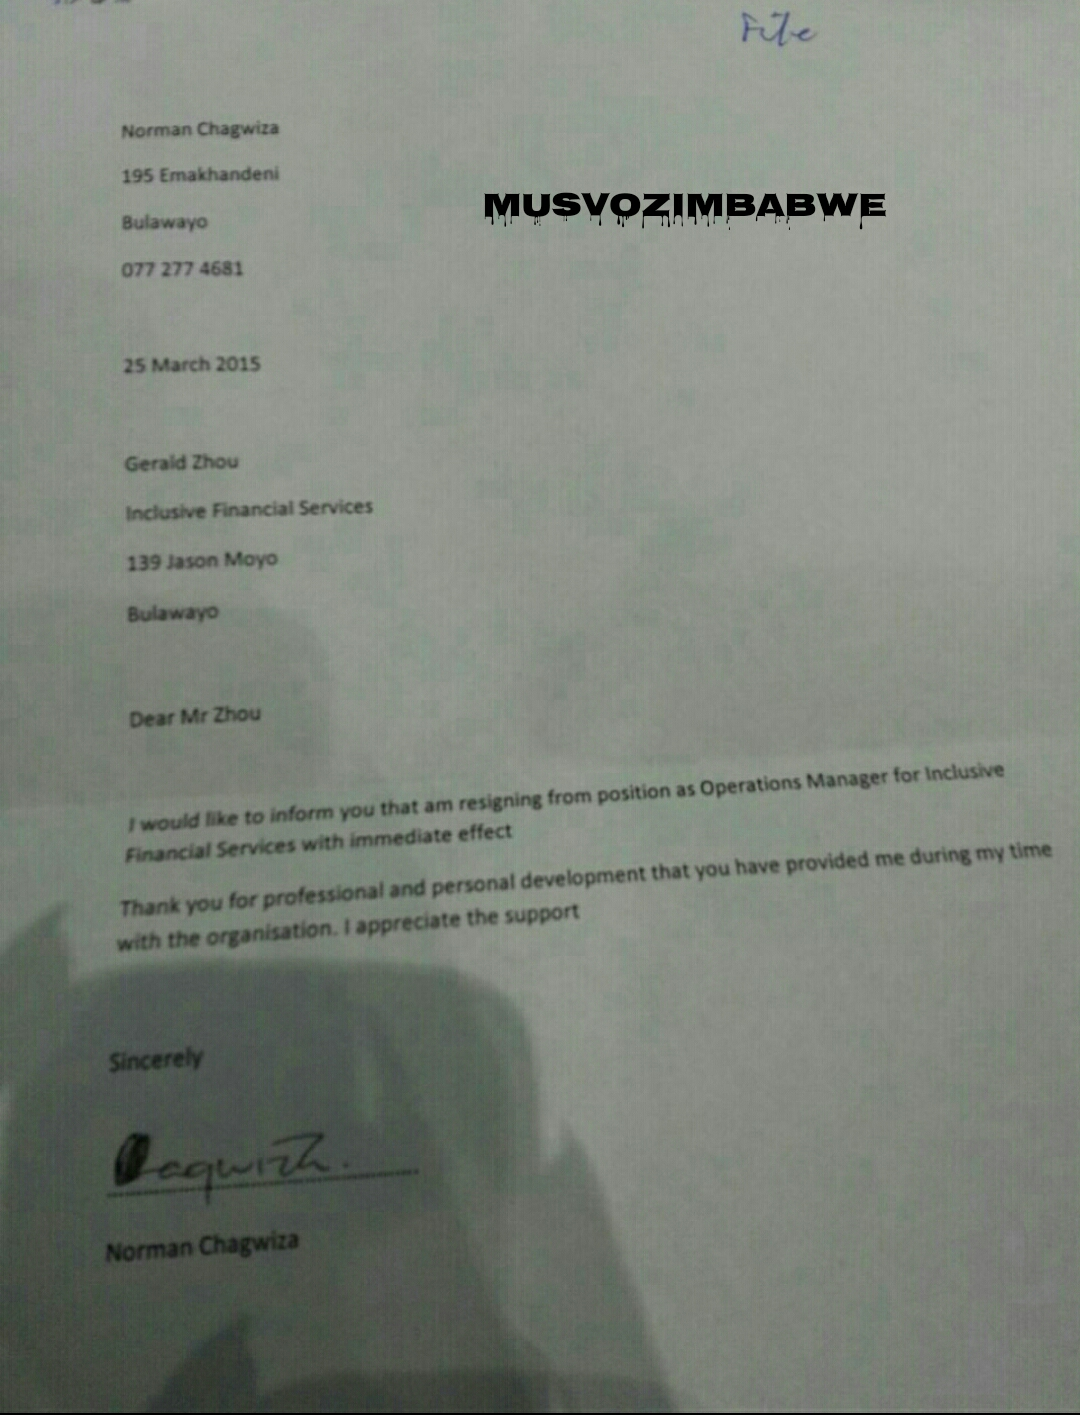 Norman resignation letter 1Married gay and Bulawayo